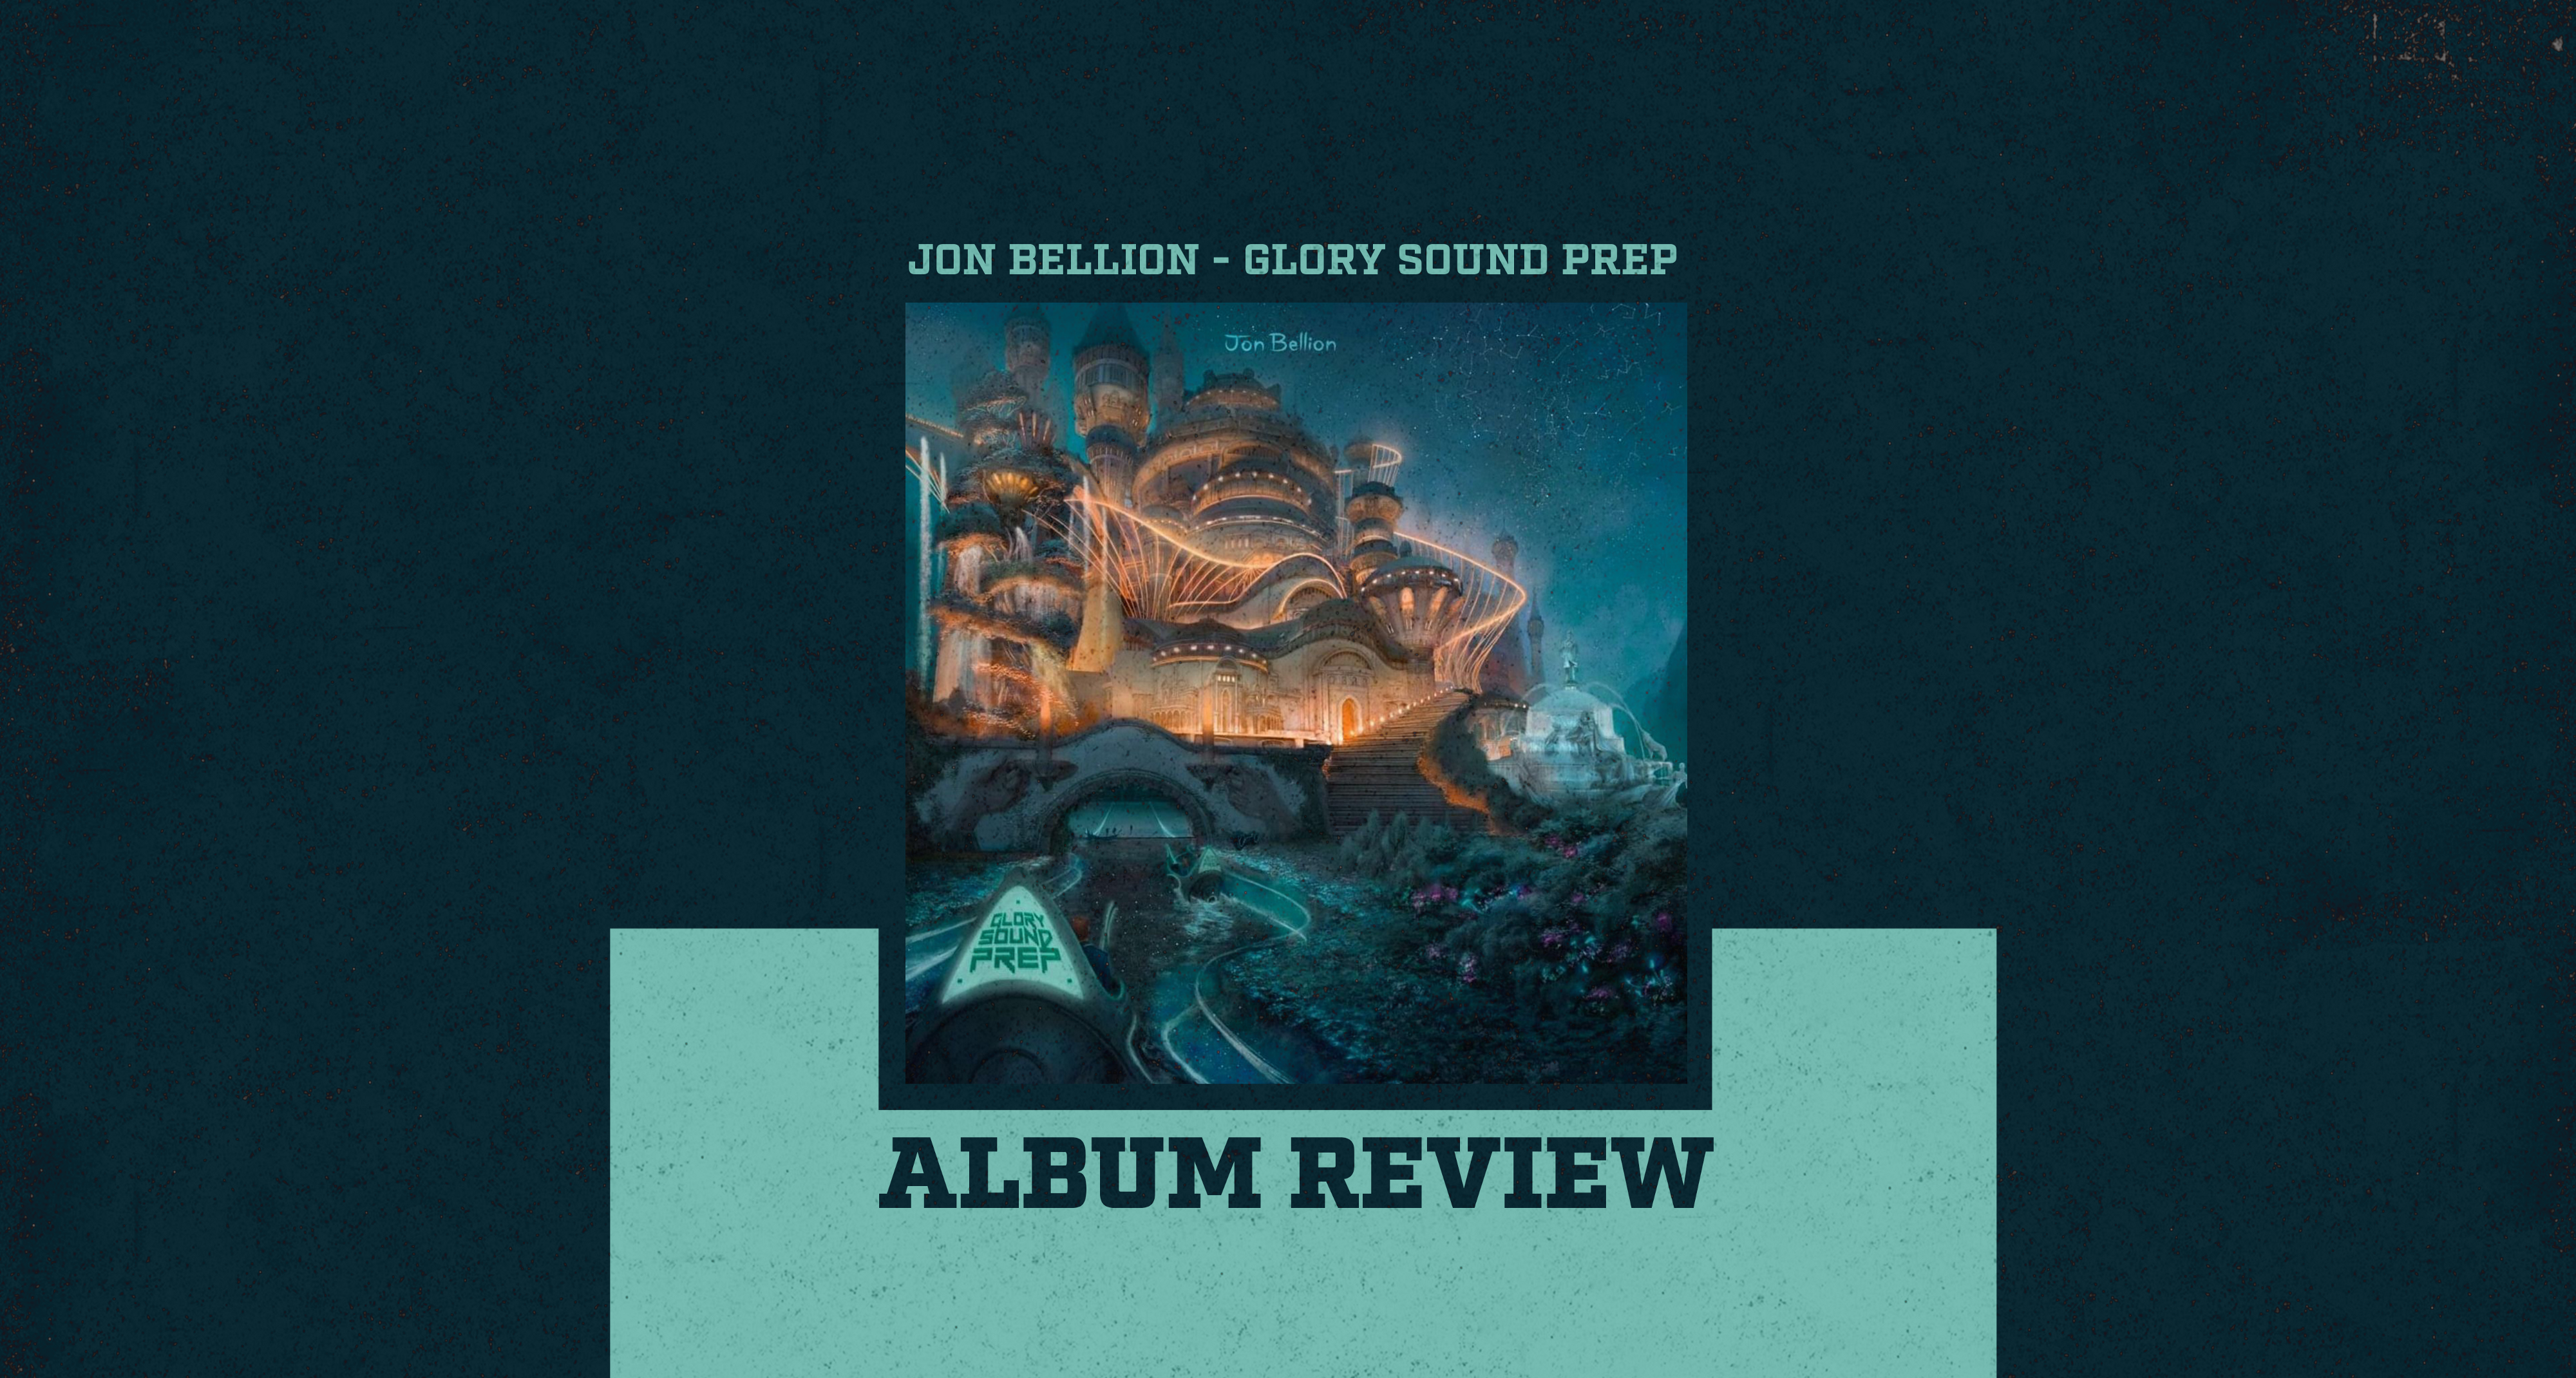 Glory Sound Prep: Jon Bellion doesn't want your attention